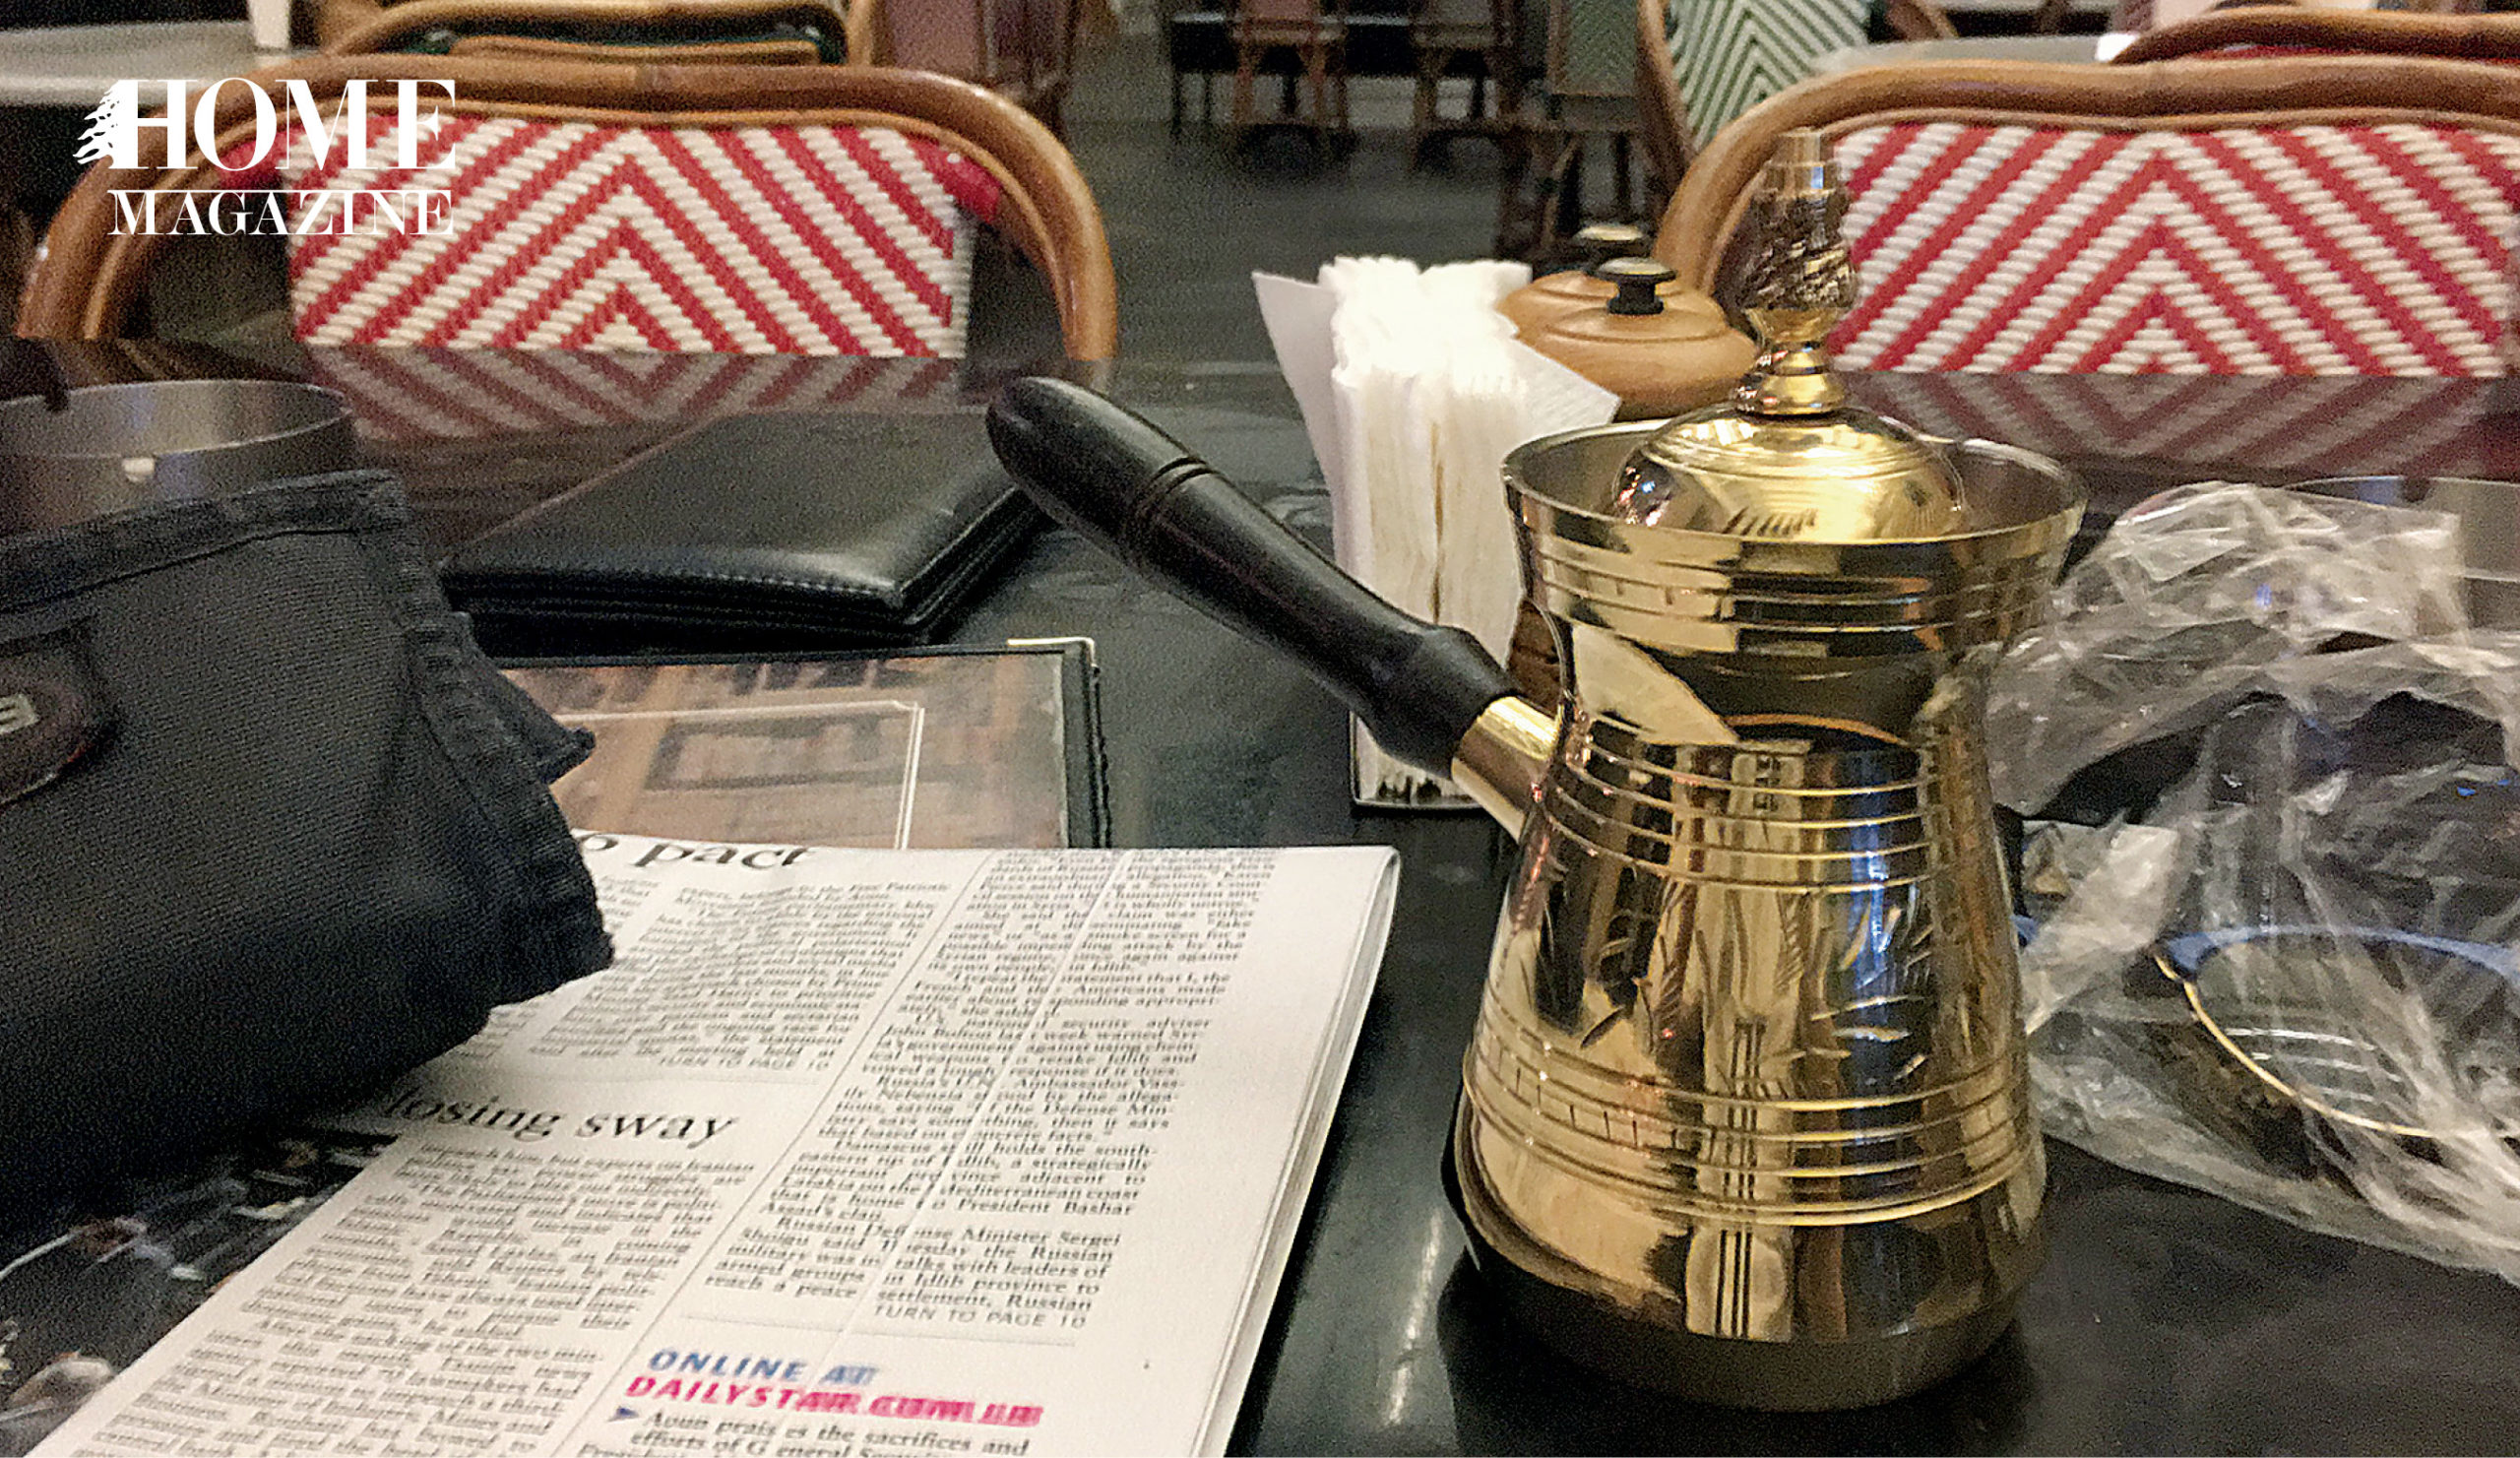 A newspaper, napkins and a coffee boiler on a table